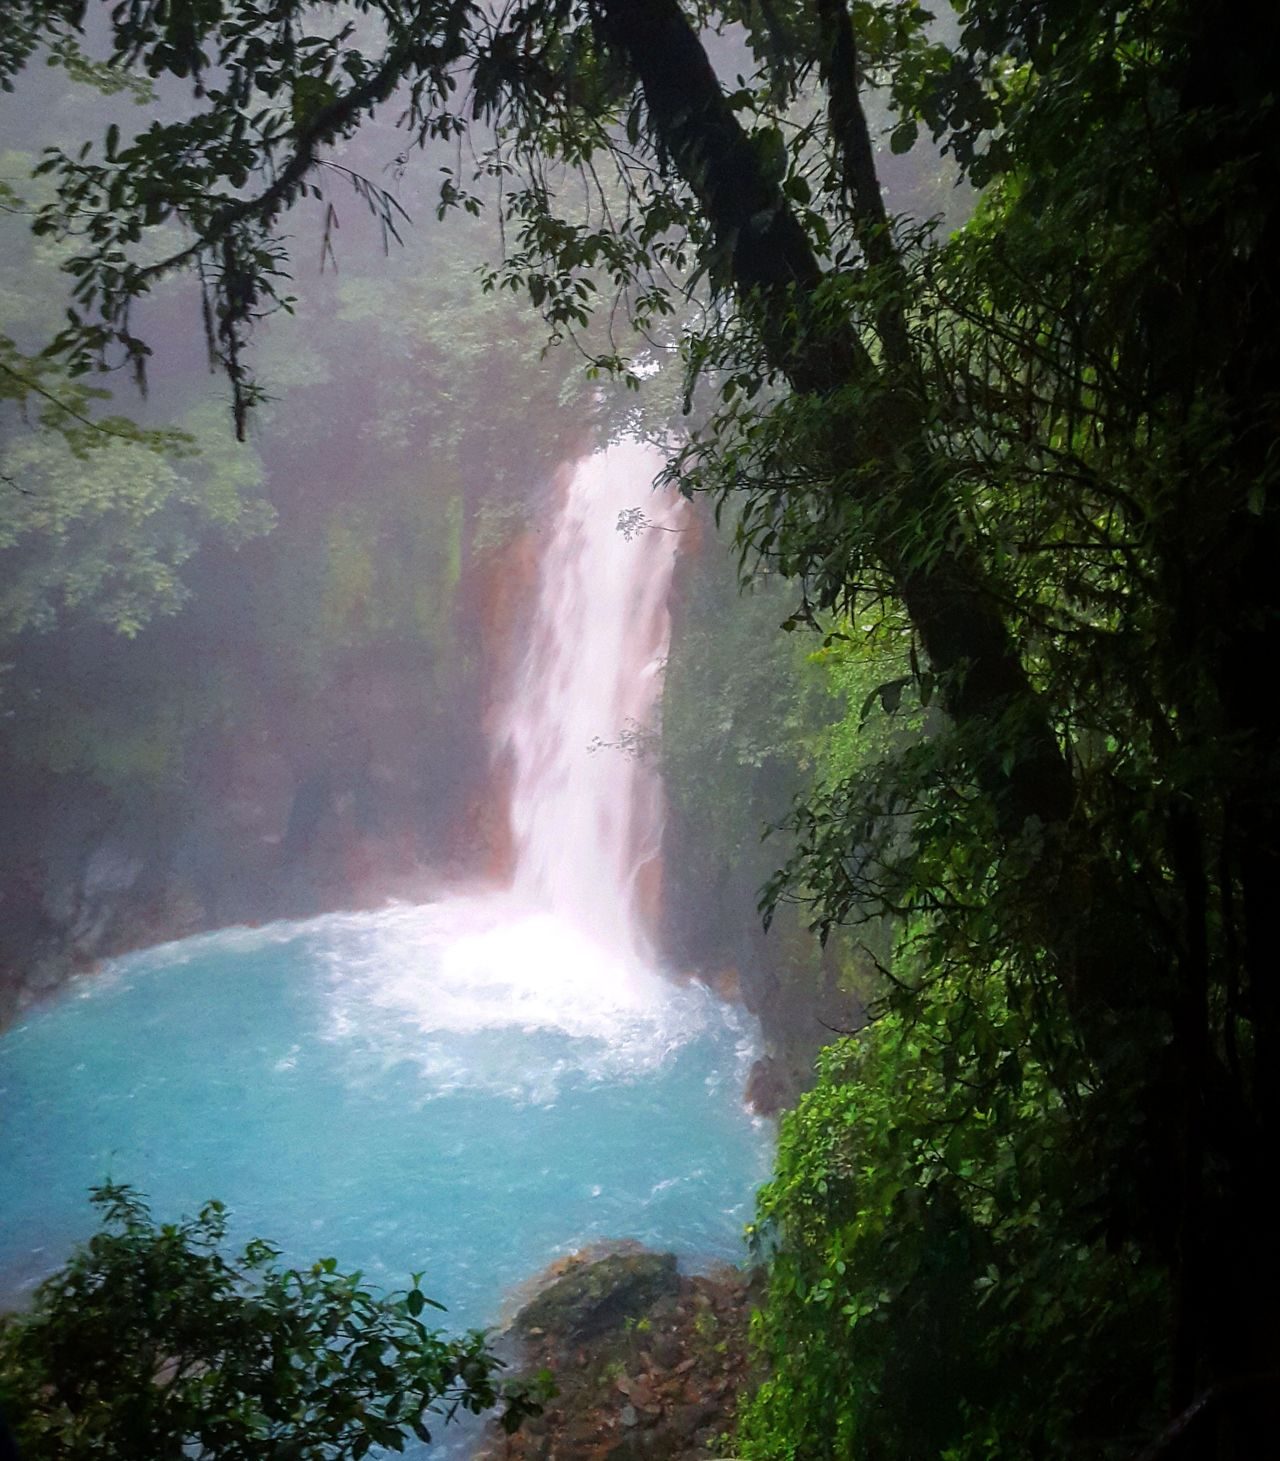 Wonderful_places Hidden Costa Rica Travelwithme Travel Photography Forest Postcard Landscape_Collection Anastasiasadvantures Eye4photography  Taking Photos Anastasia Feel The Journey Landscape_photography Travelagent Travelplanning Travel The World Rainforest Landscape Waterfall Bright Colour Of Life Travel Destinations Traveldeeper Showcase June